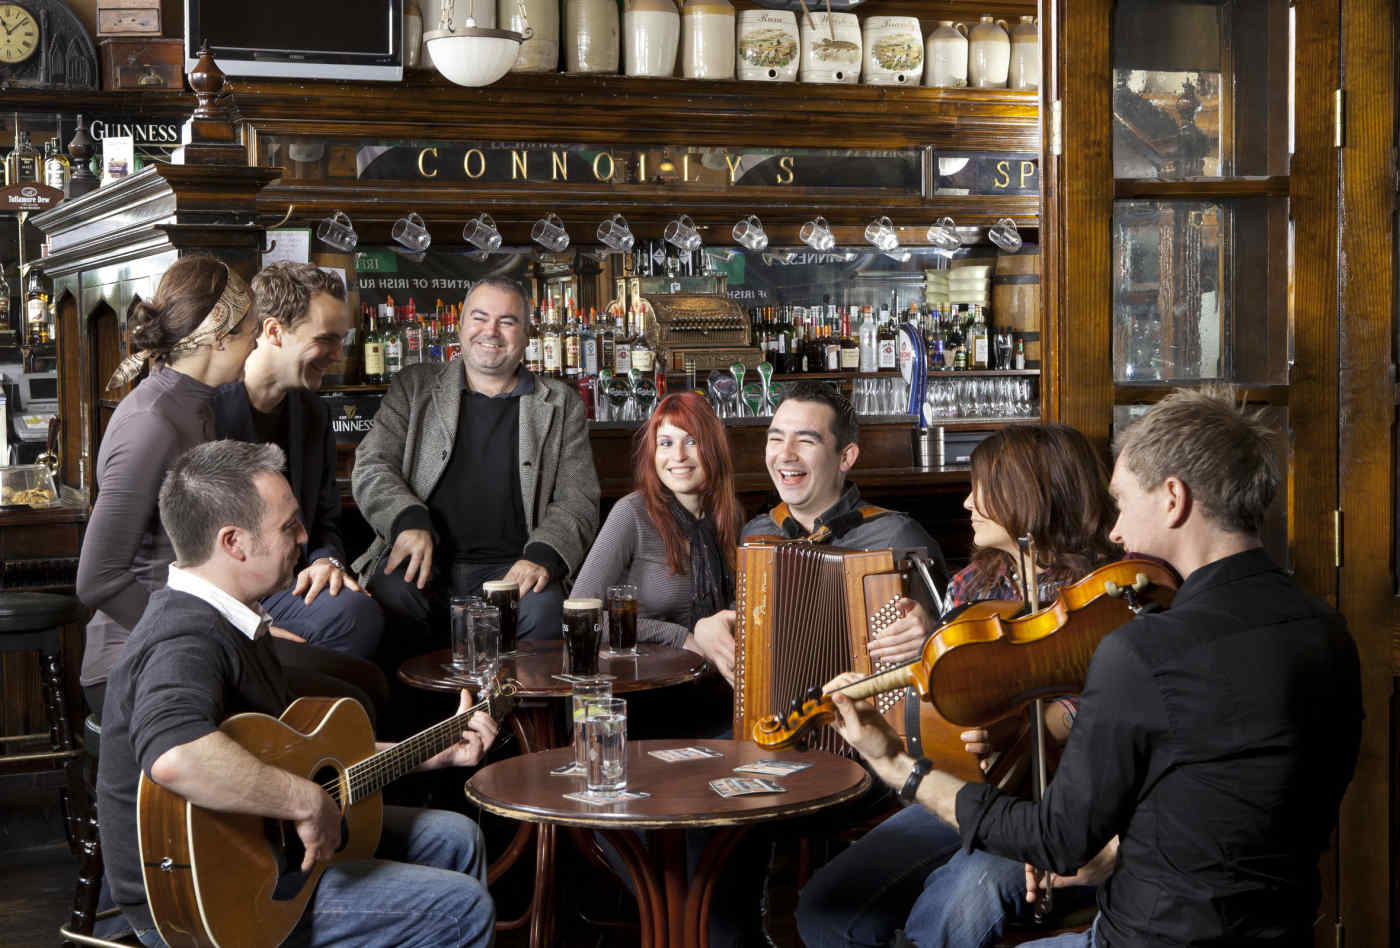 Traditional Irish pub music